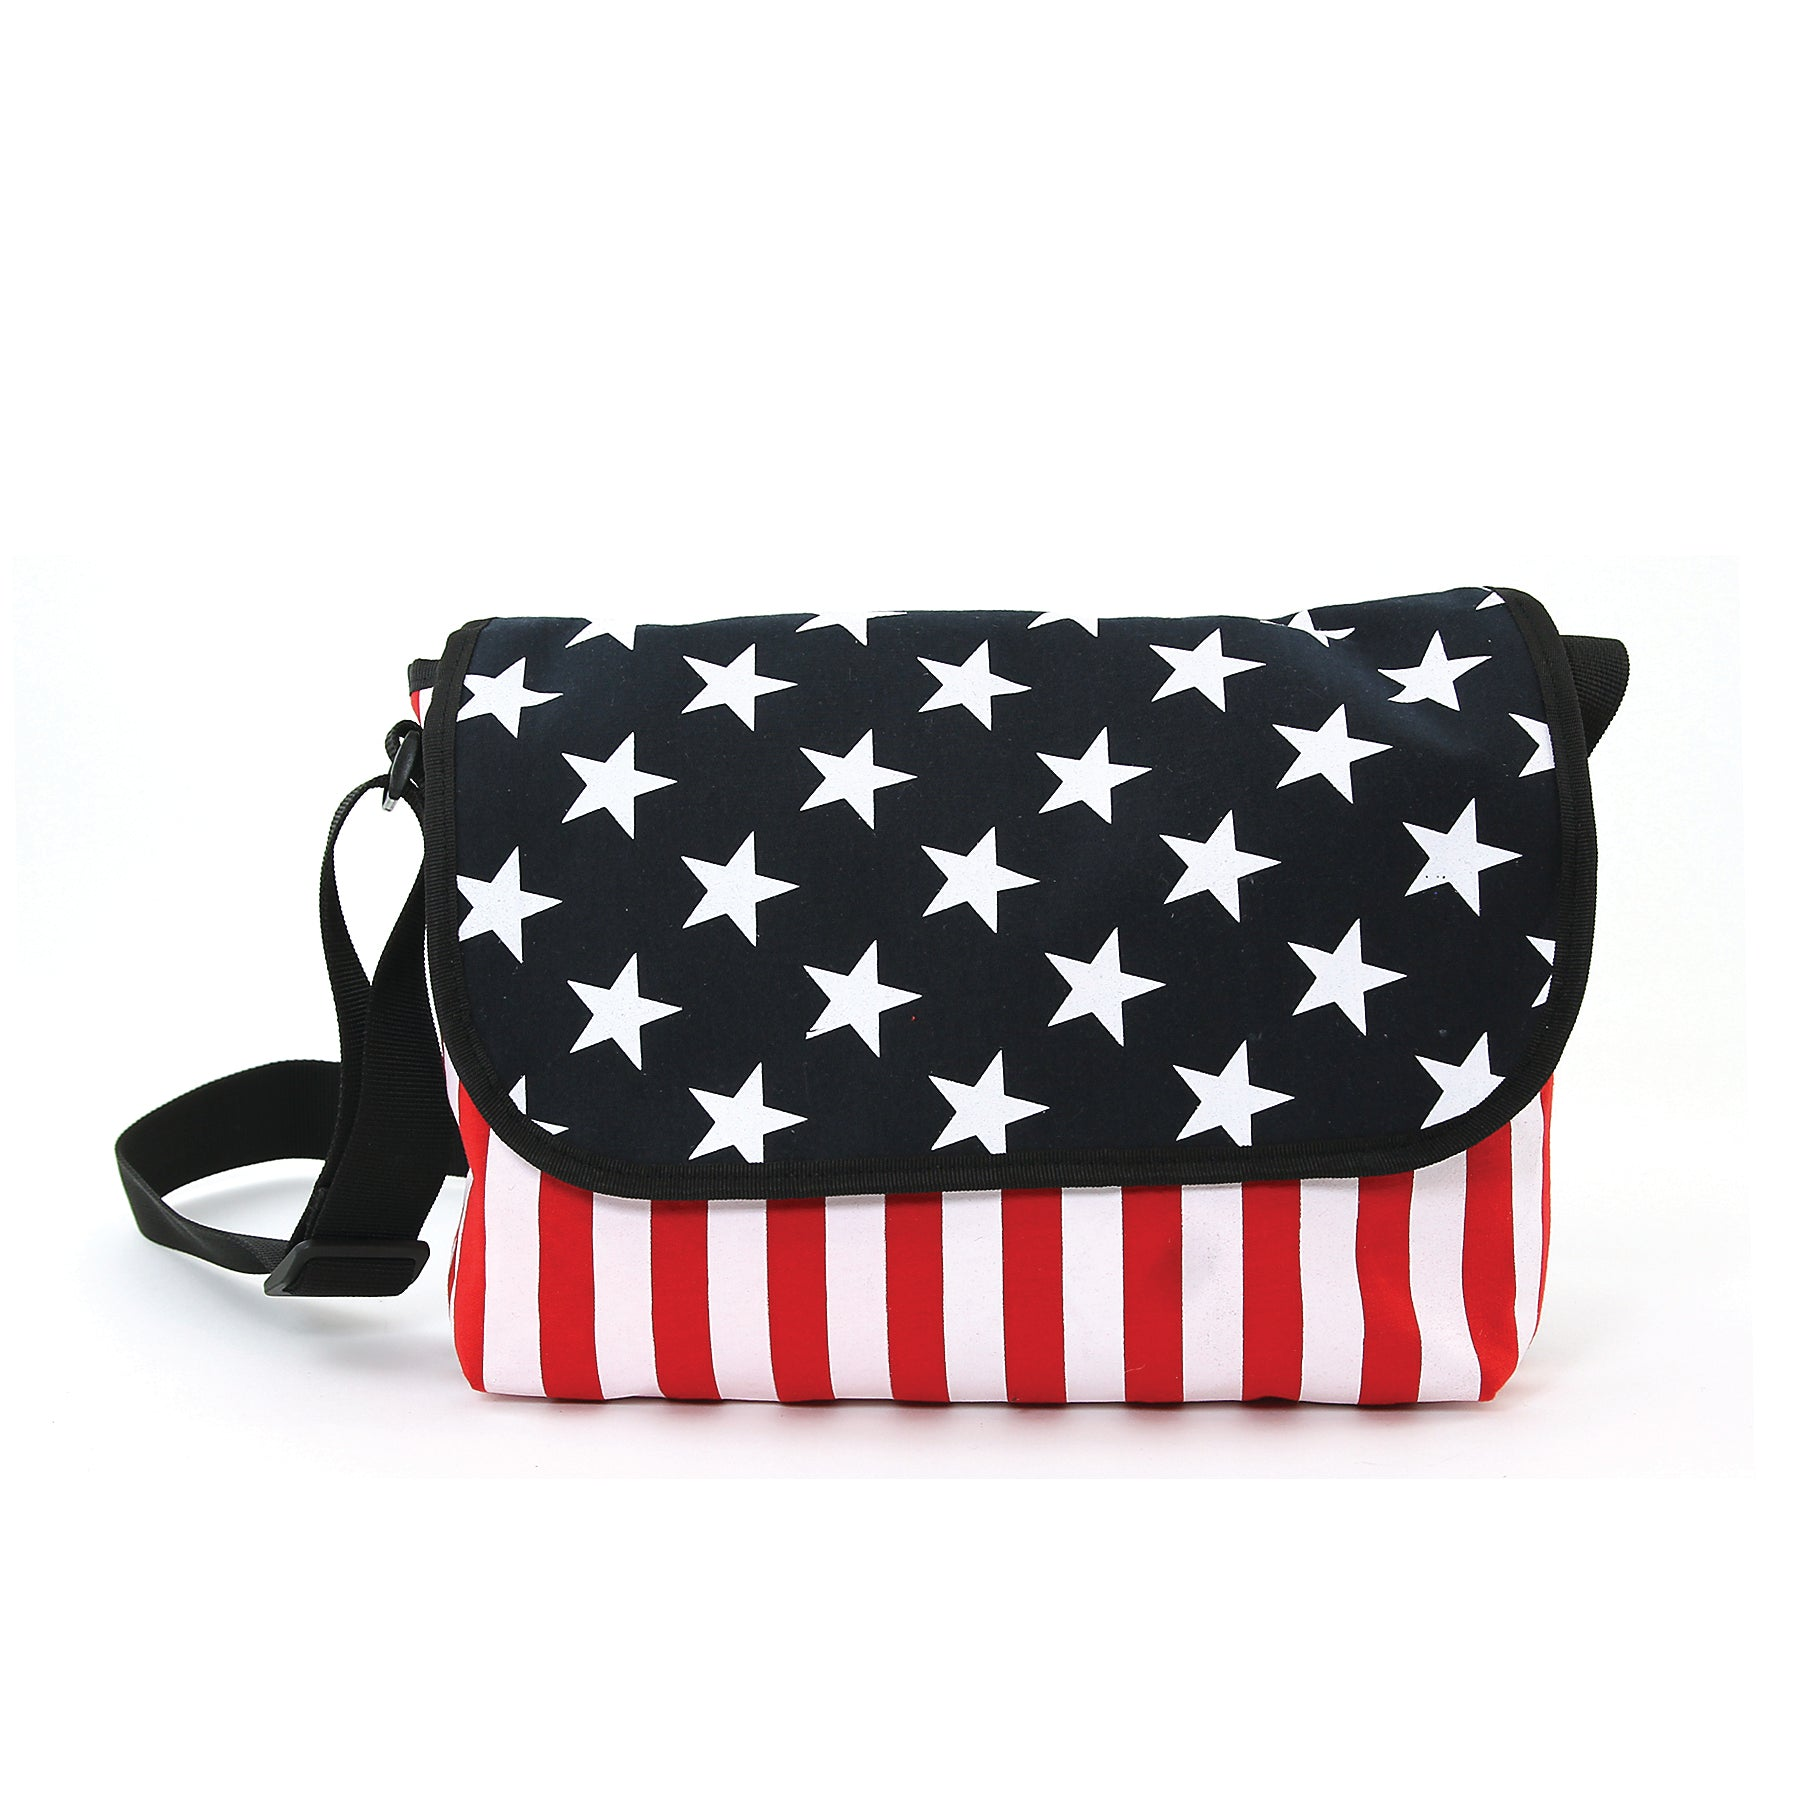 Stars And Stripes Cotton Small Messenger Crossbody in Canvas Material front view